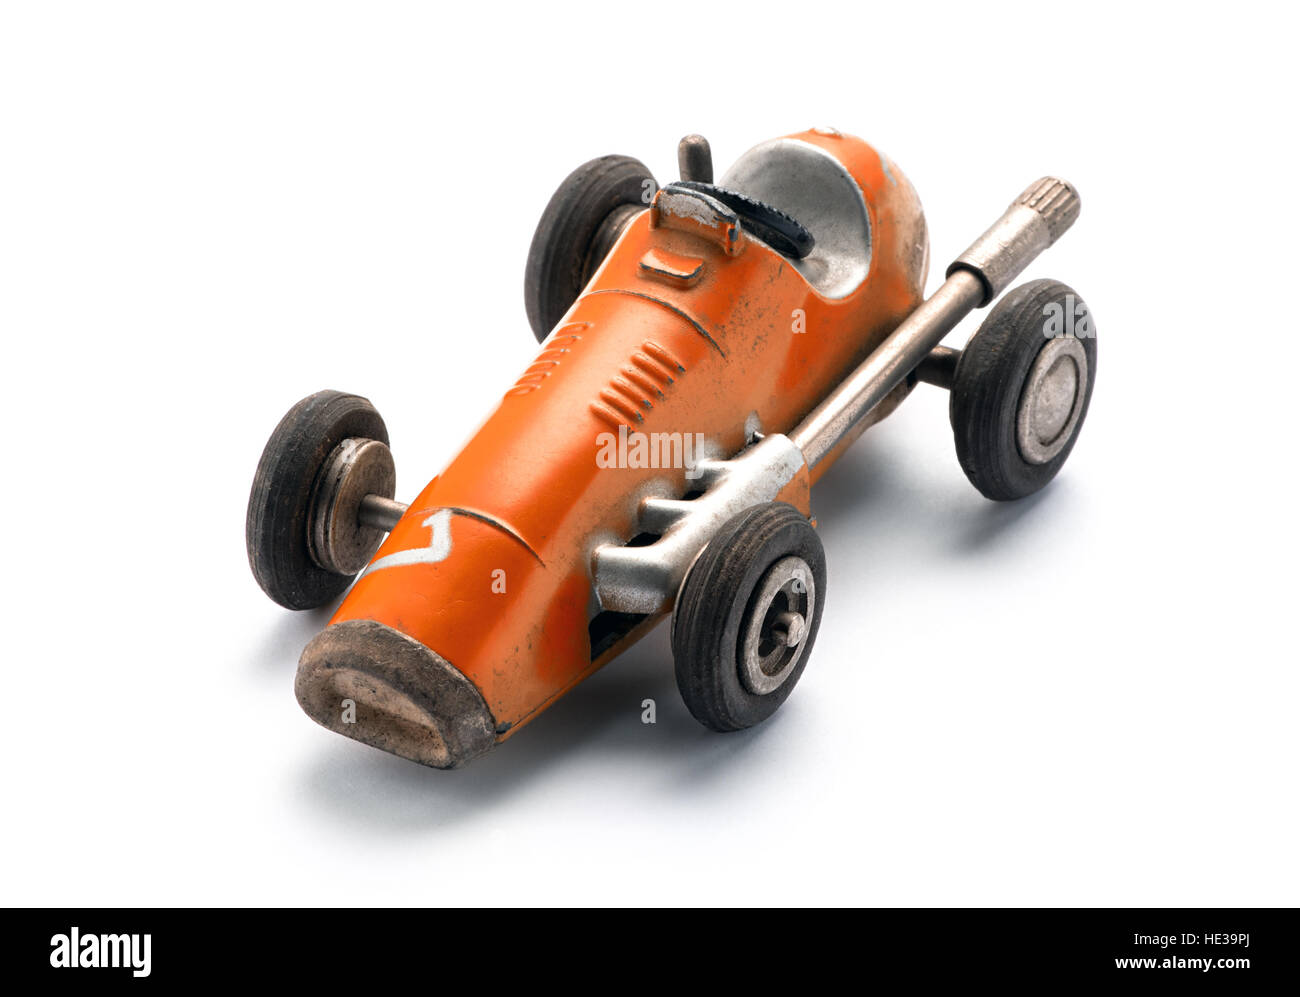 Colorful orange vintage toy racing car in a three quarter front view from above on a white background with copy - Stock Image